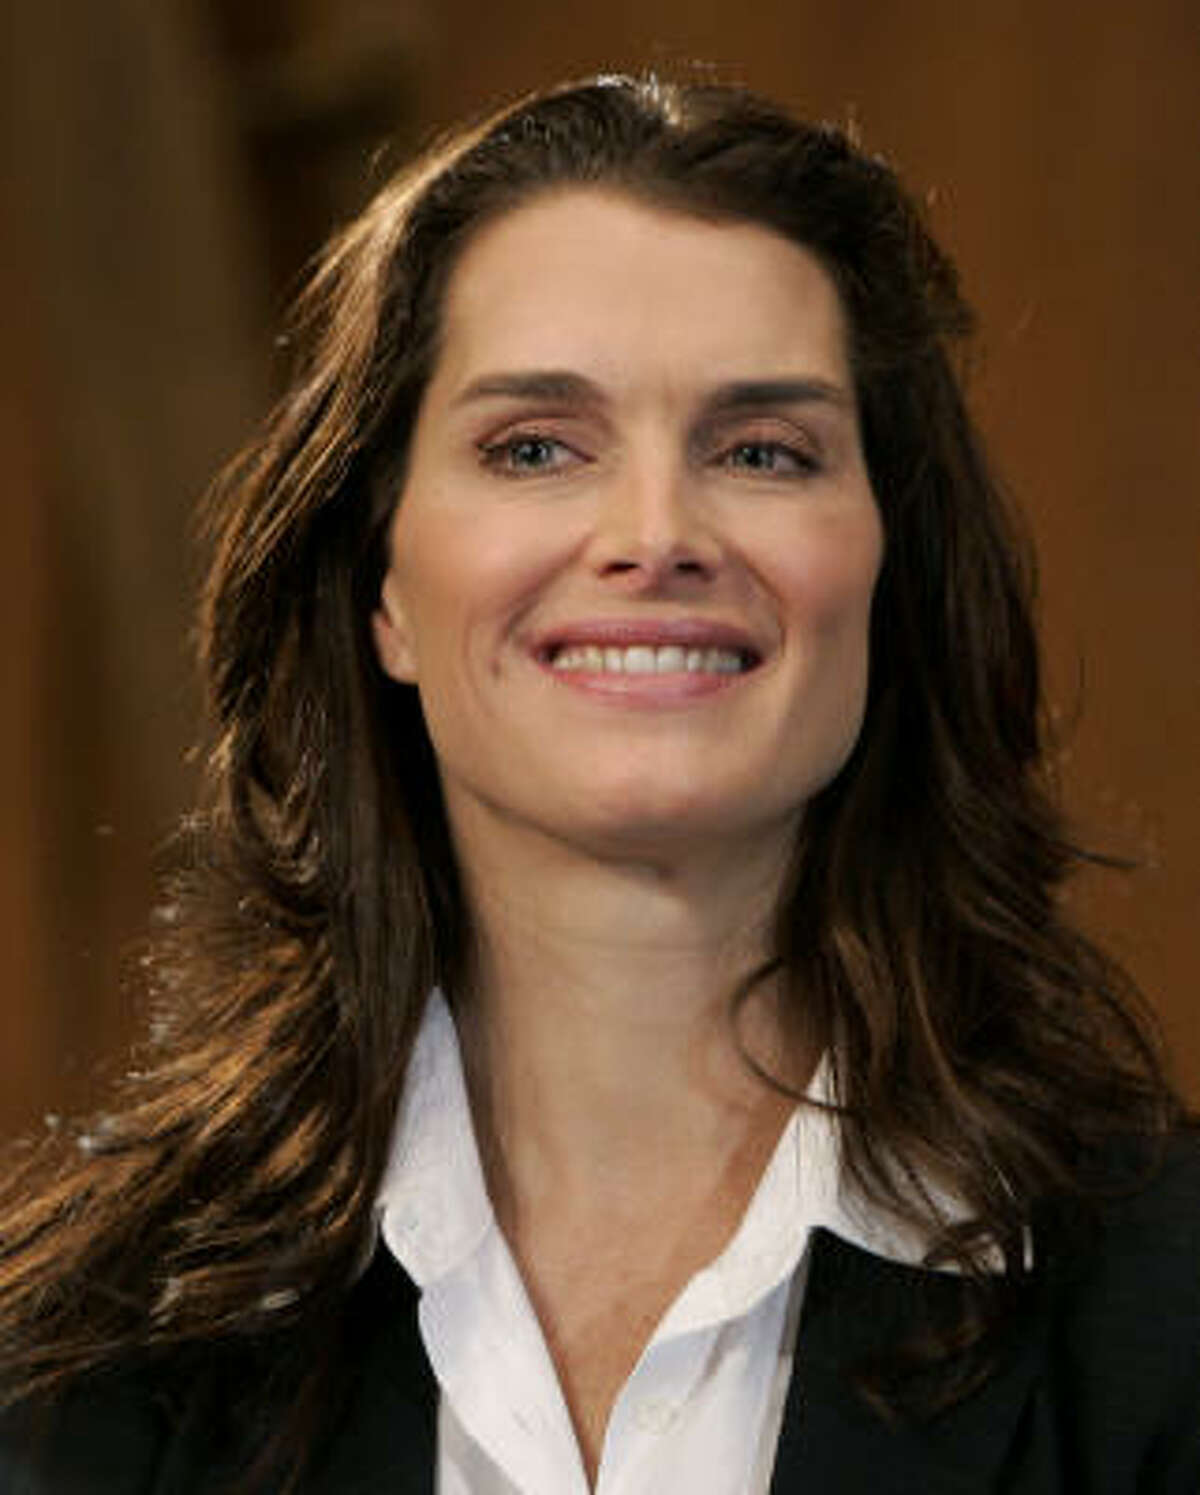 Brooke Shields' Wendy Healy is one of the few career women who managed to balance family and work on Lipstick Jungle. But not without a few pitfalls along the way.